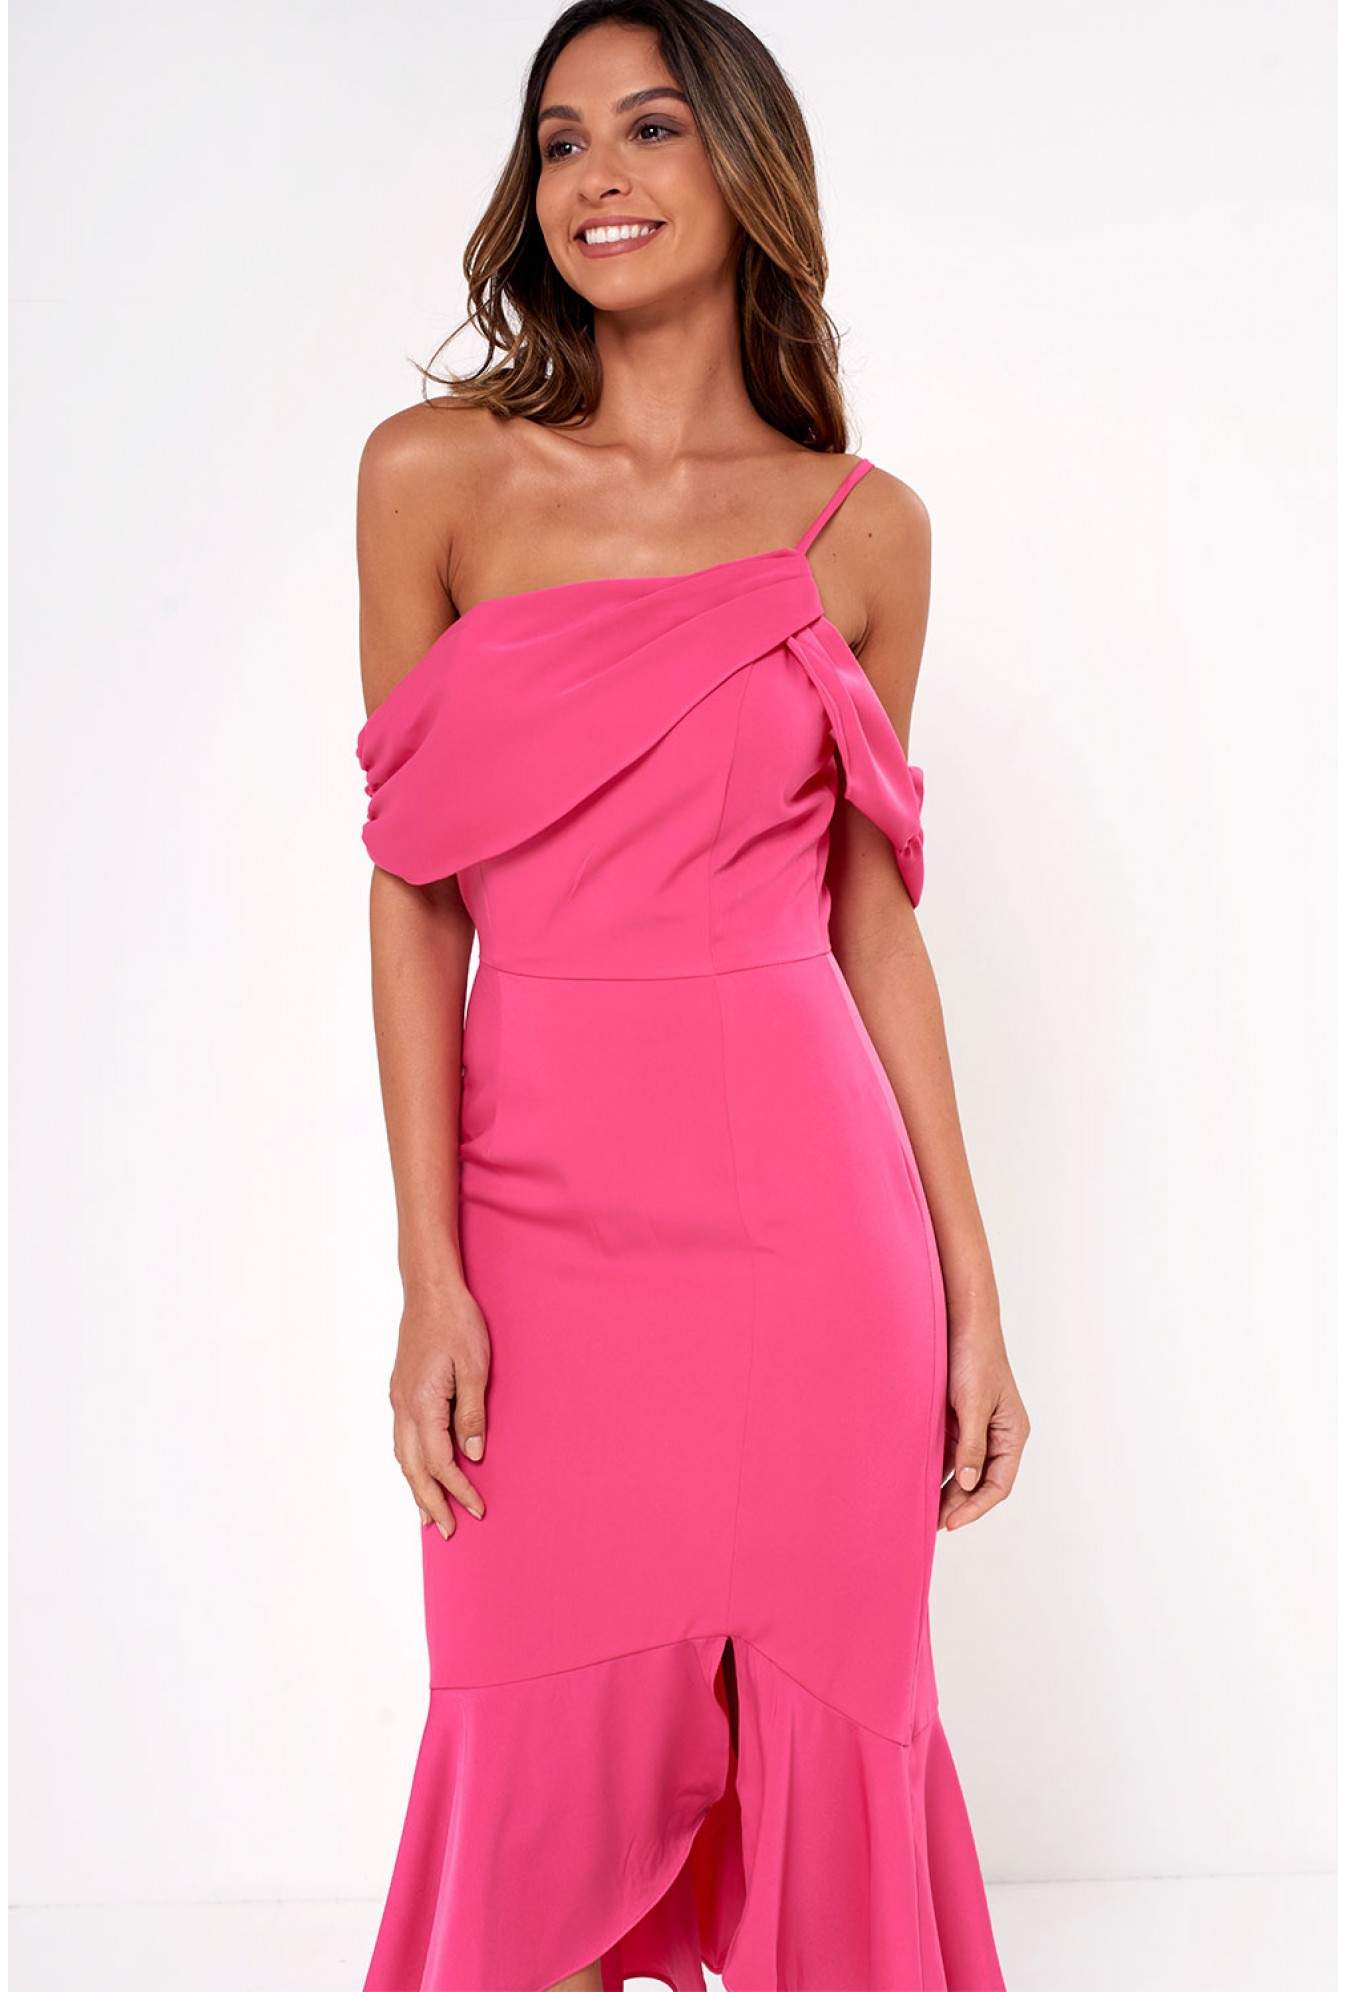 0189a2b102c0 Soho Market Lavish Alice One Shoulder Midi Dress in Bright Pink ...